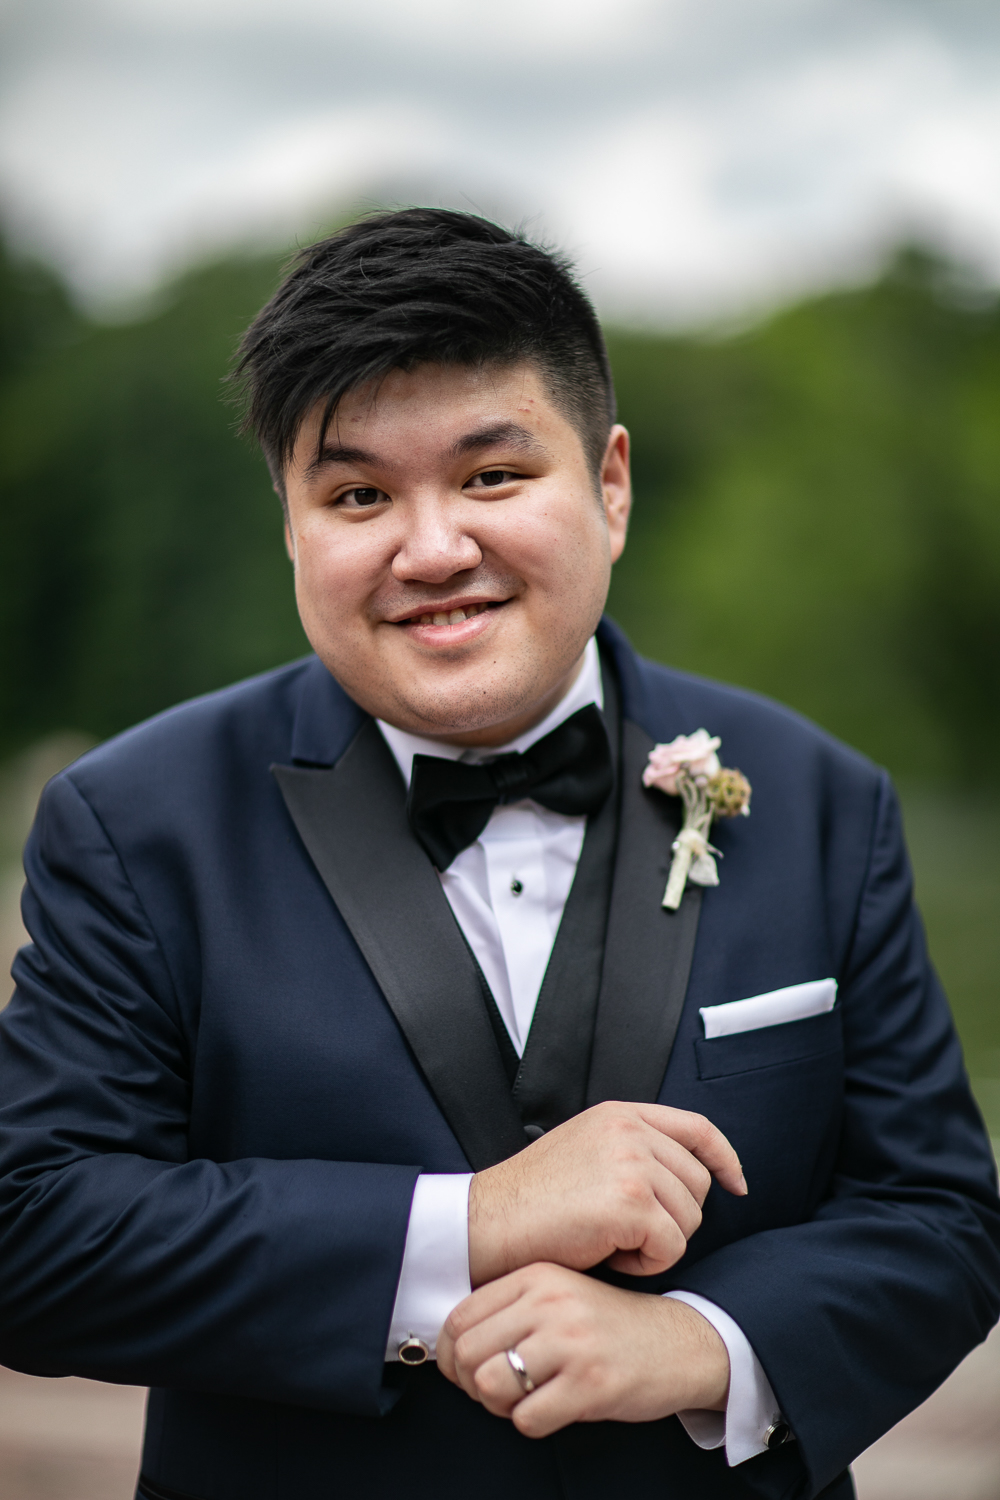 Portrait of a groom wearing a blue and black tuxedo   Lincoln Center Wedding Photos   Jason and Susanna's Glam NYC Elopement